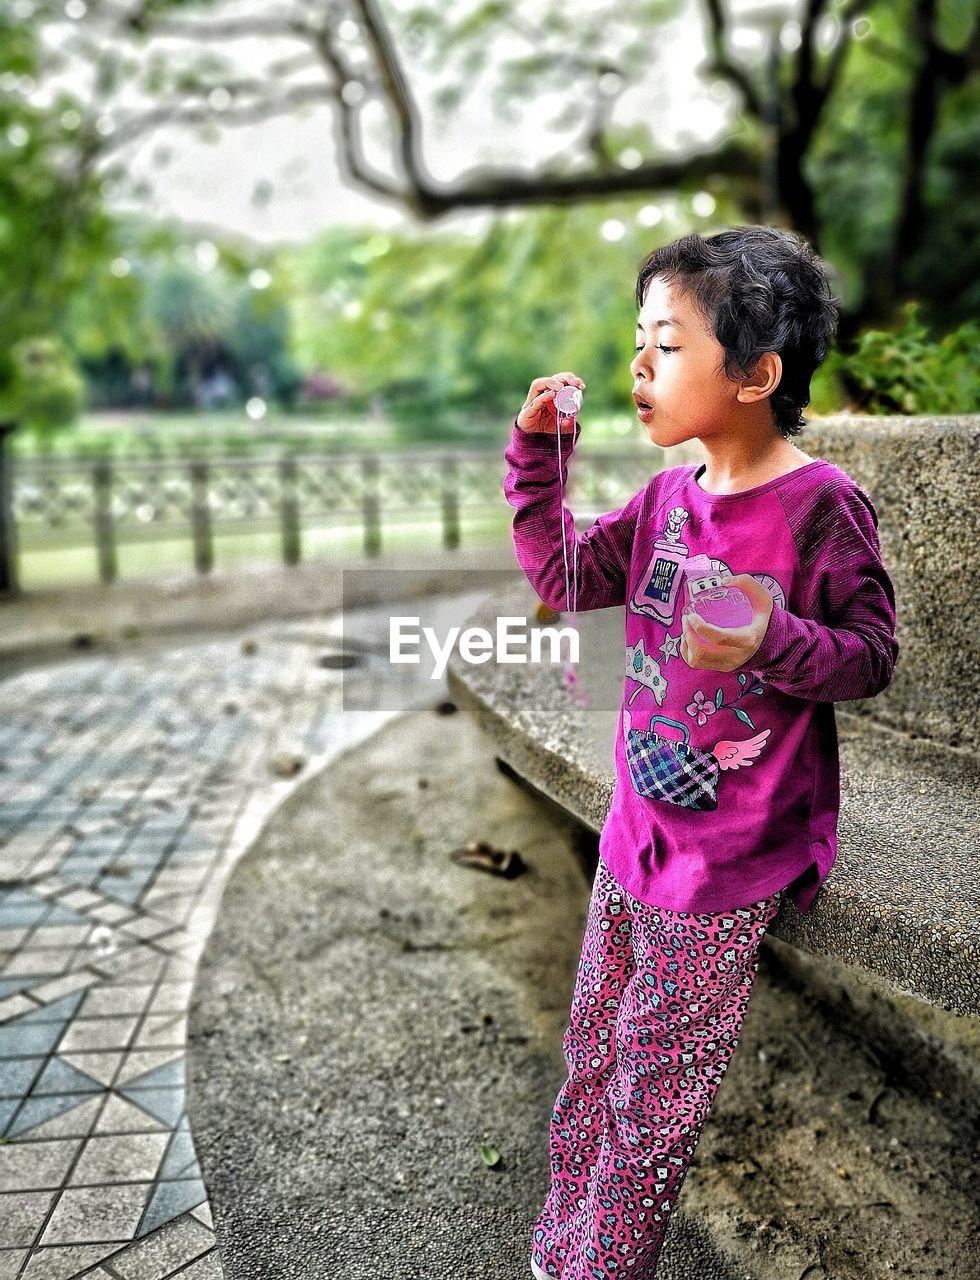 childhood, one person, females, child, girls, women, real people, leisure activity, lifestyles, casual clothing, day, focus on foreground, full length, side view, three quarter length, standing, pink color, looking, innocence, outdoors, purple, hairstyle